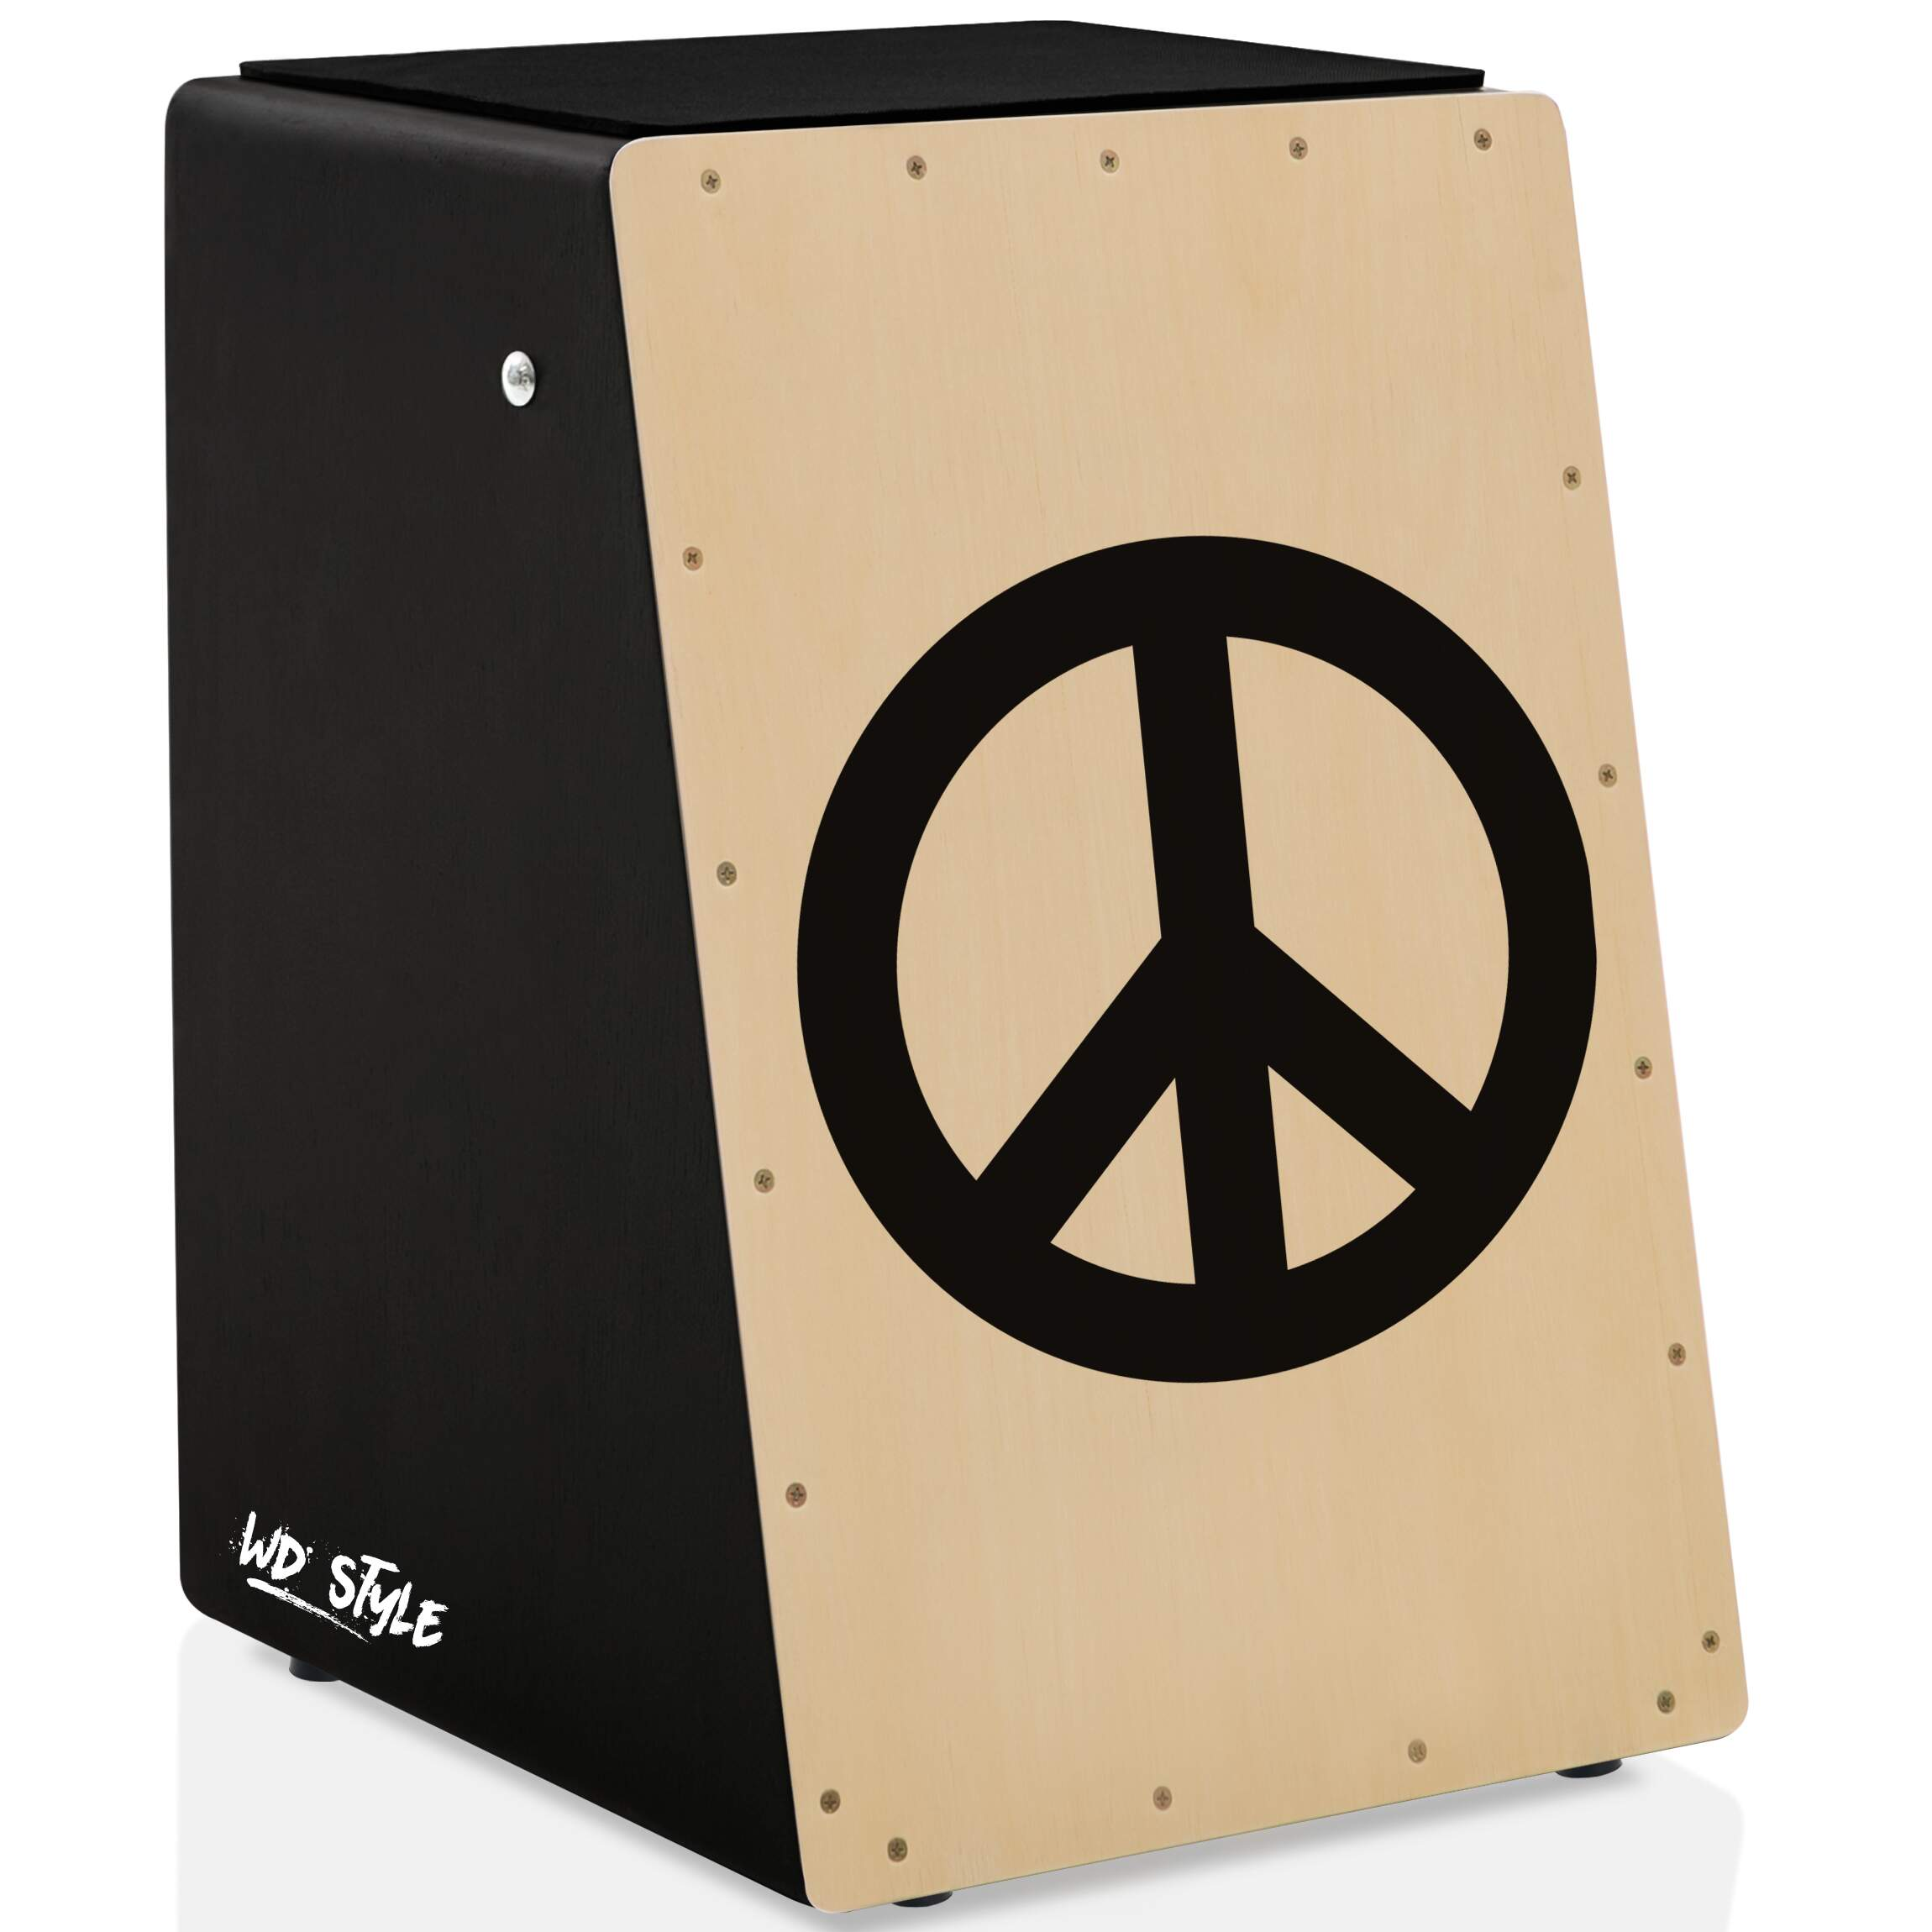 Cajón WD Style Personalizado Inclinado Black - Tampa Natural | SERTANEJO